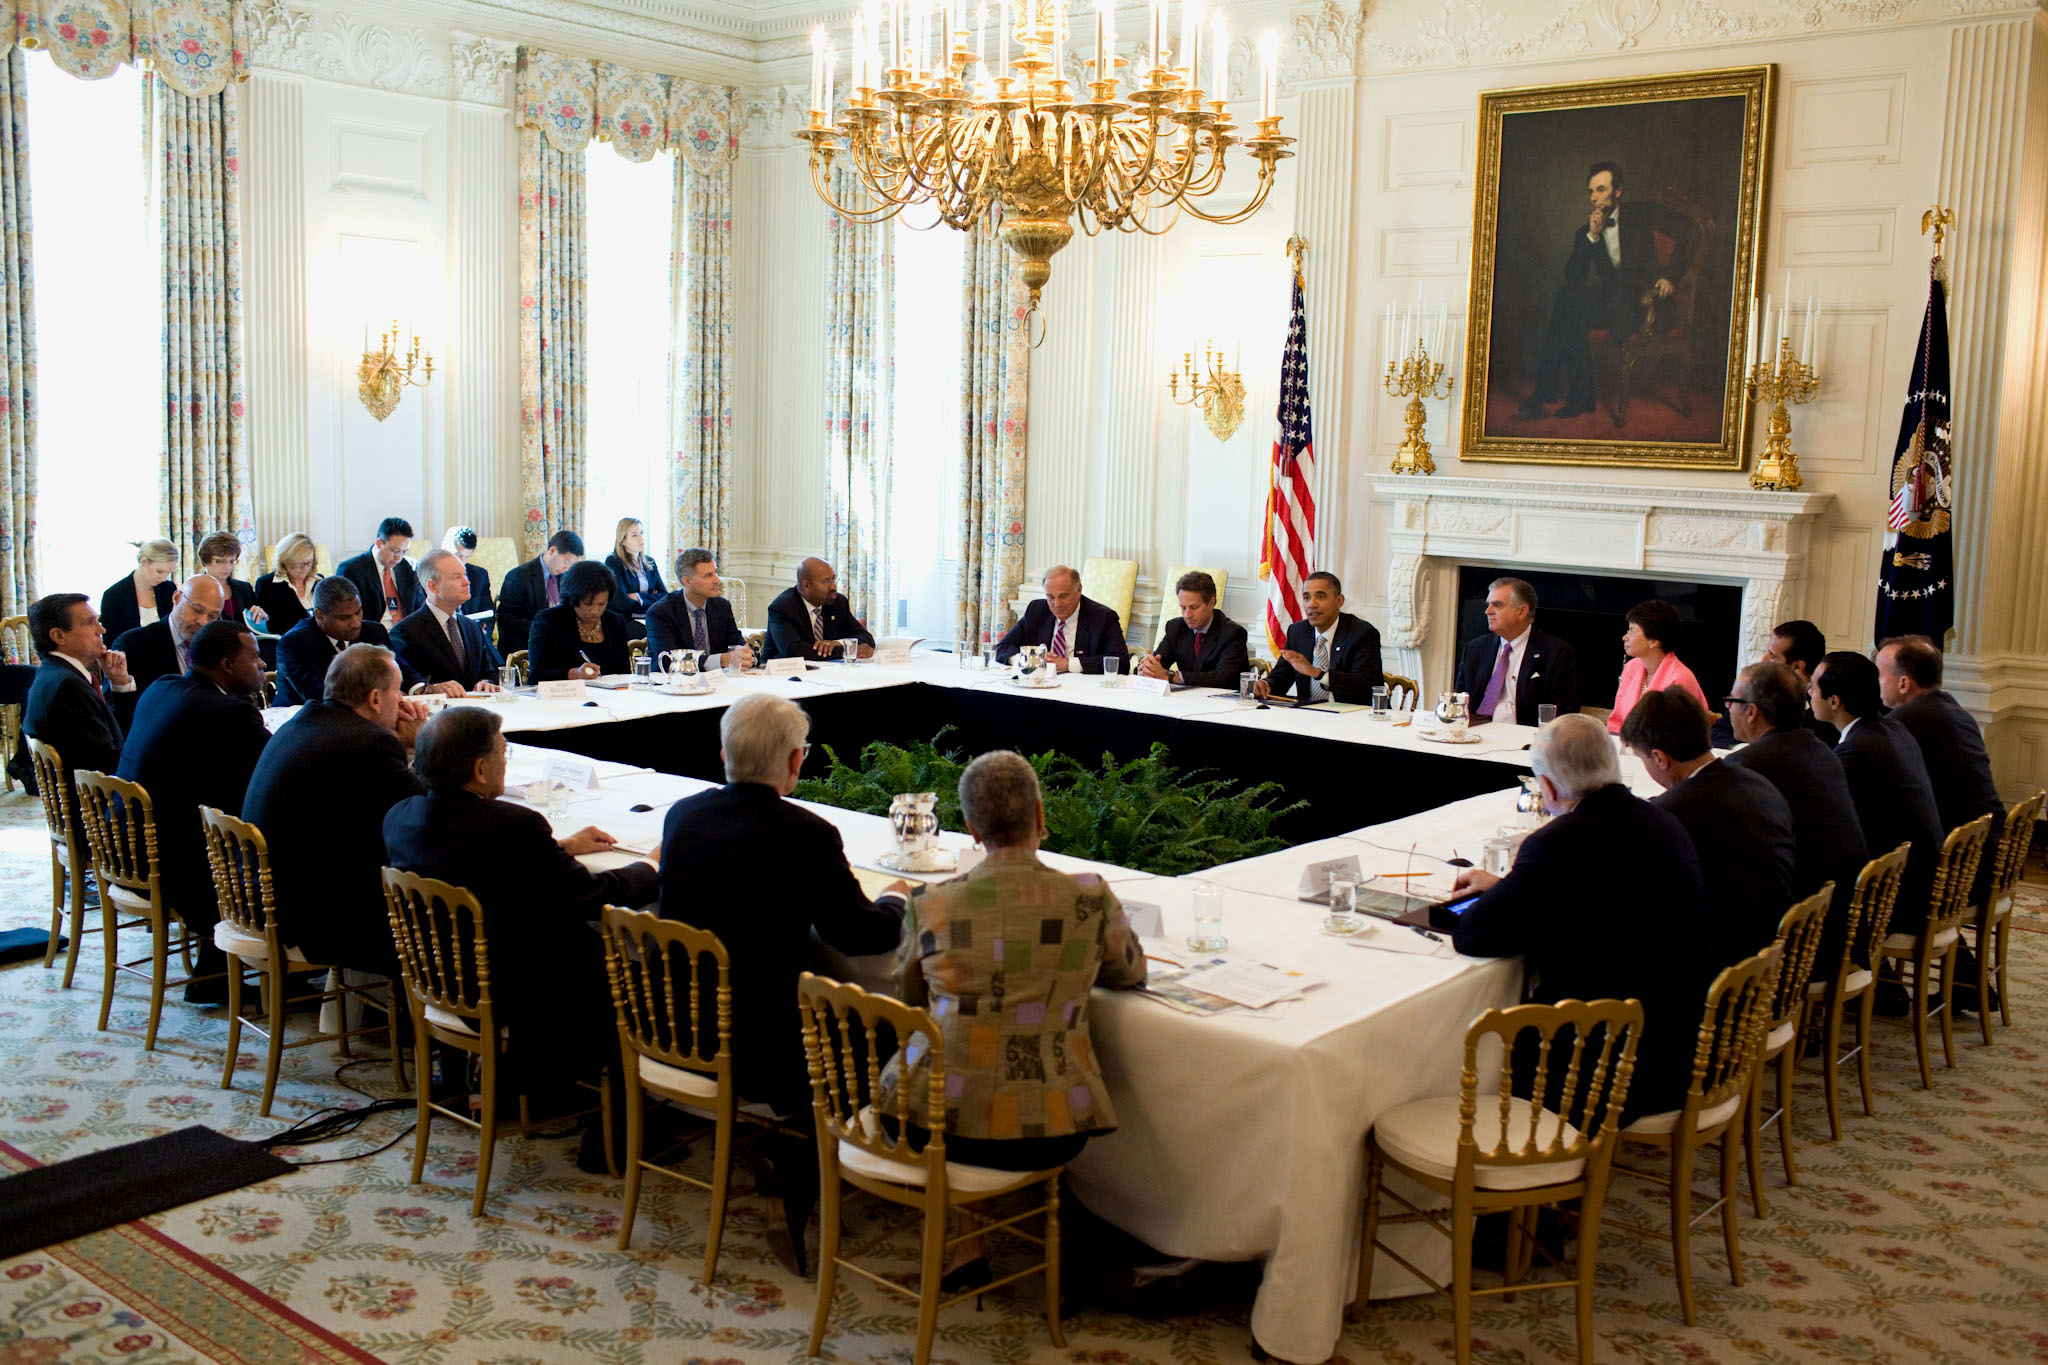 President Obama Holds a Meeting on Infrastructure